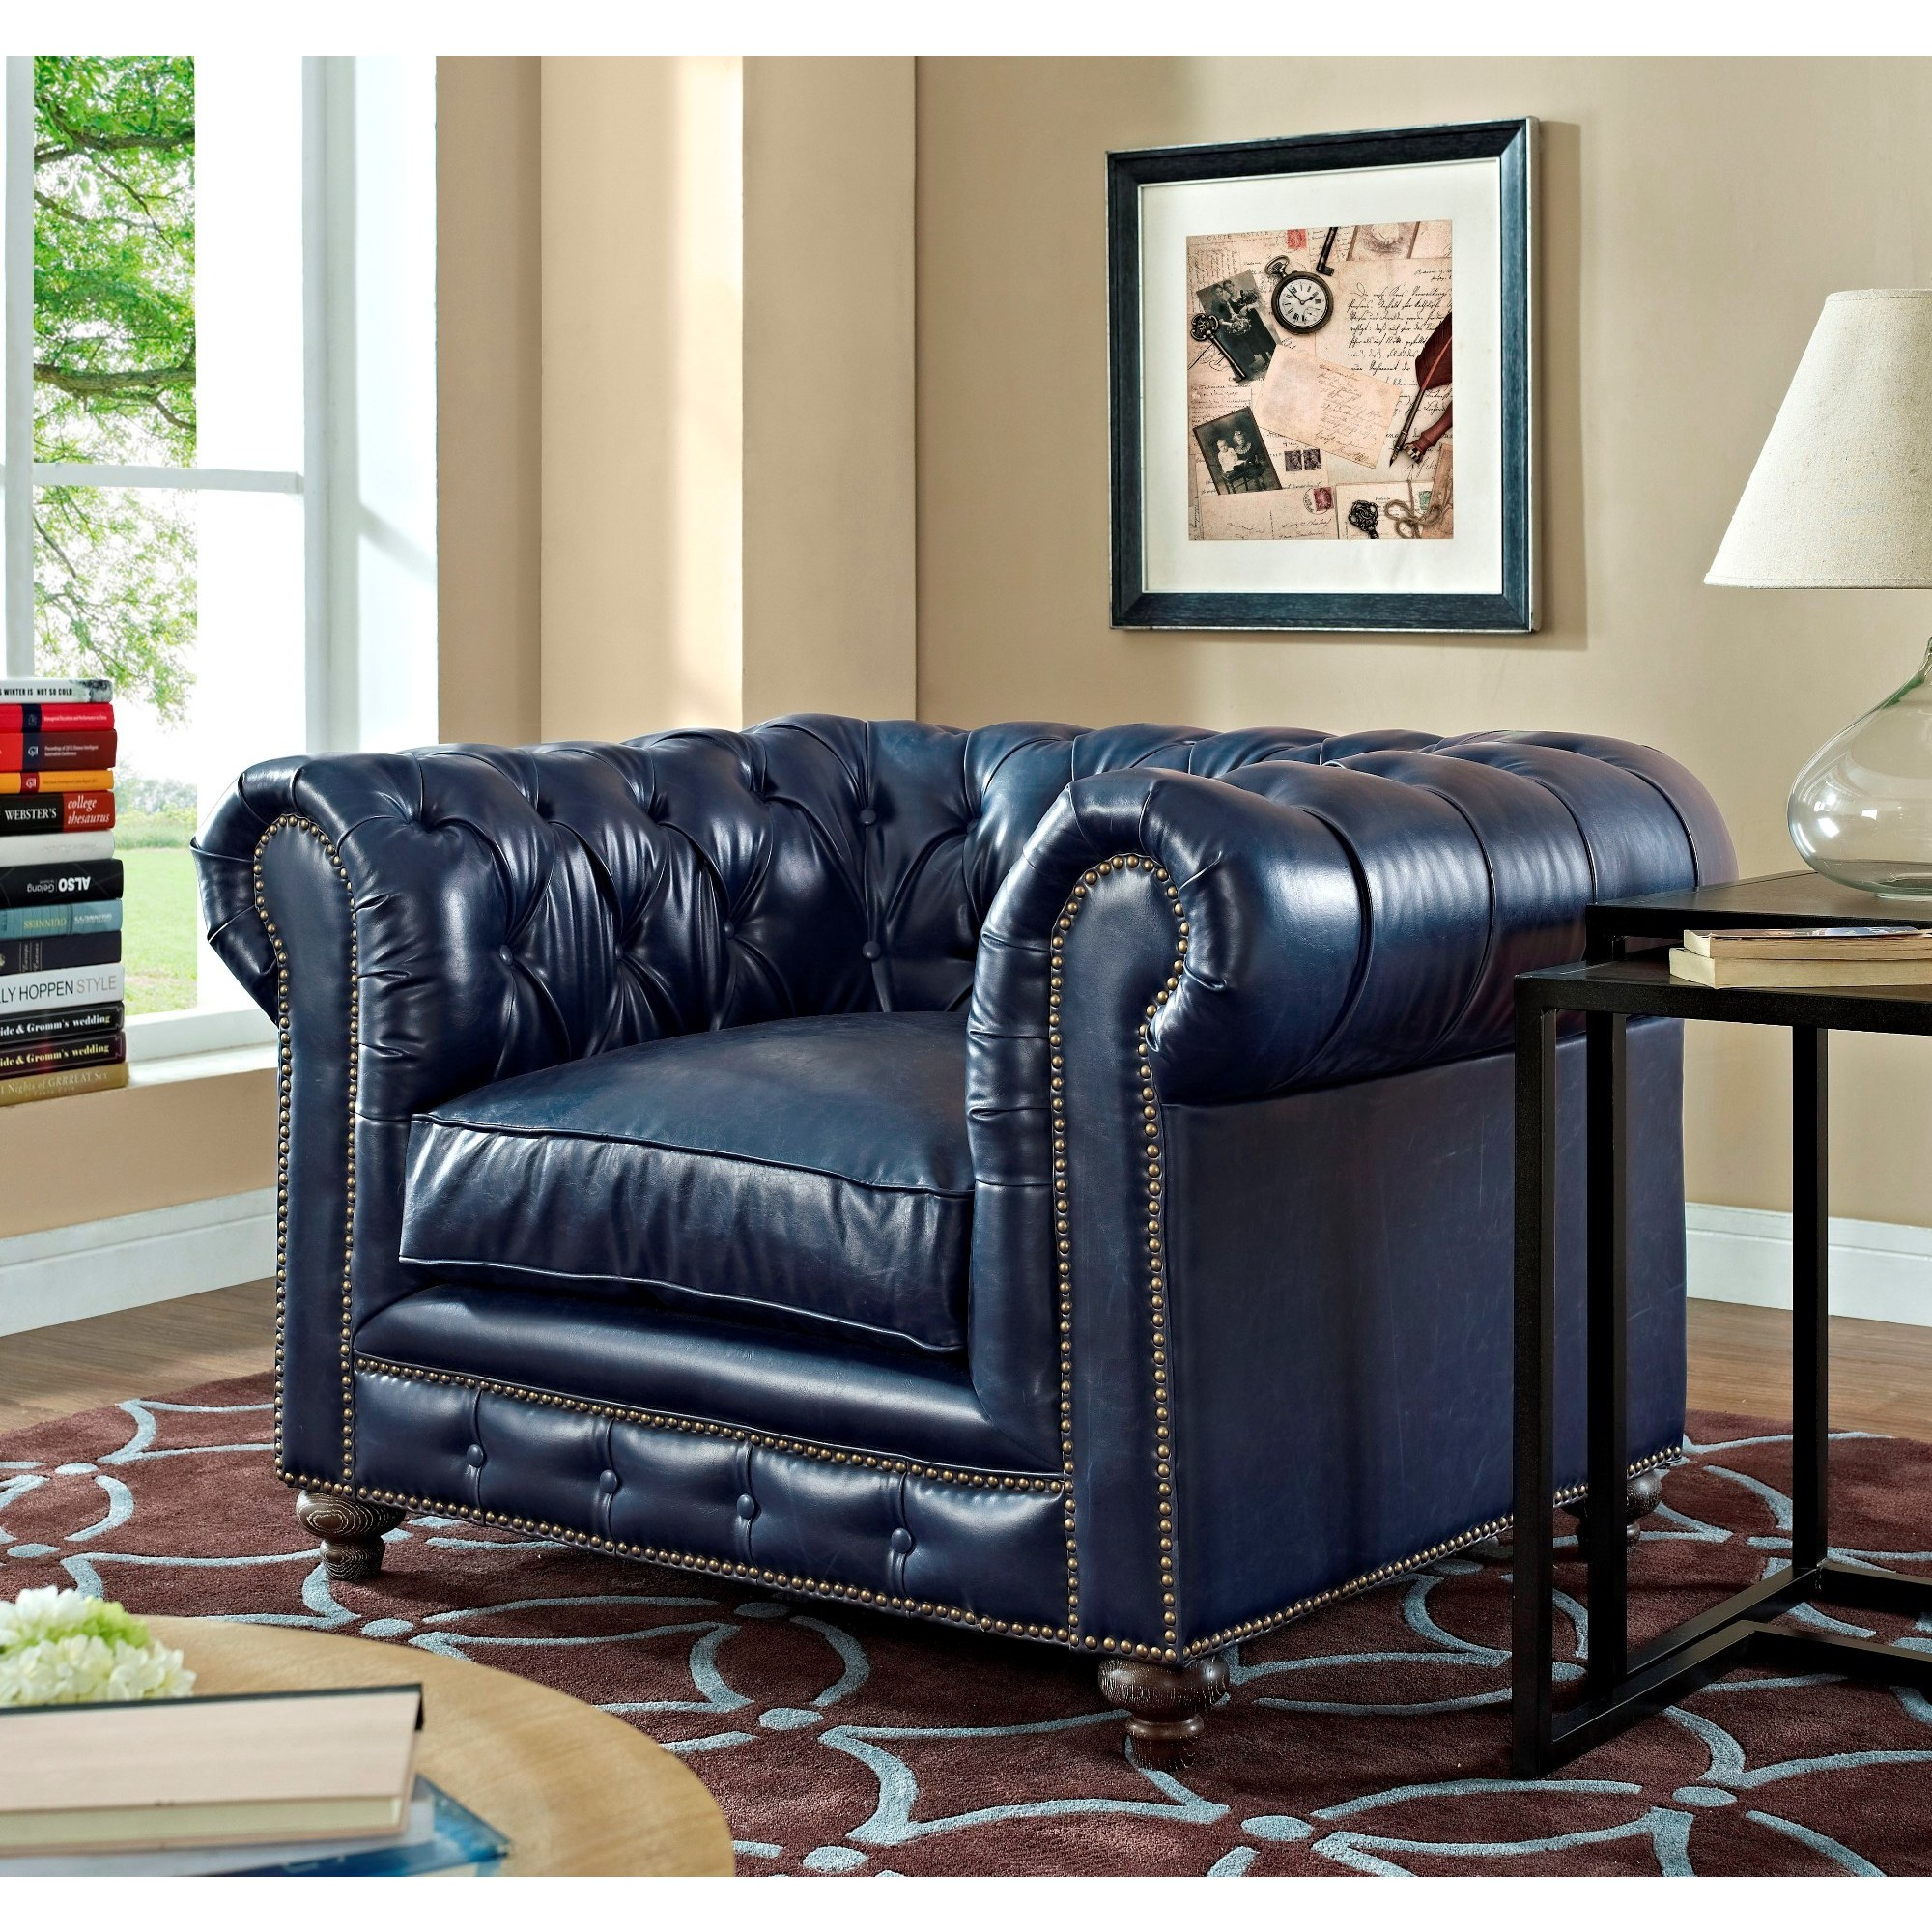 blue leather living room sets wall panels shop durango rustic set free shipping today overstock com 10156789